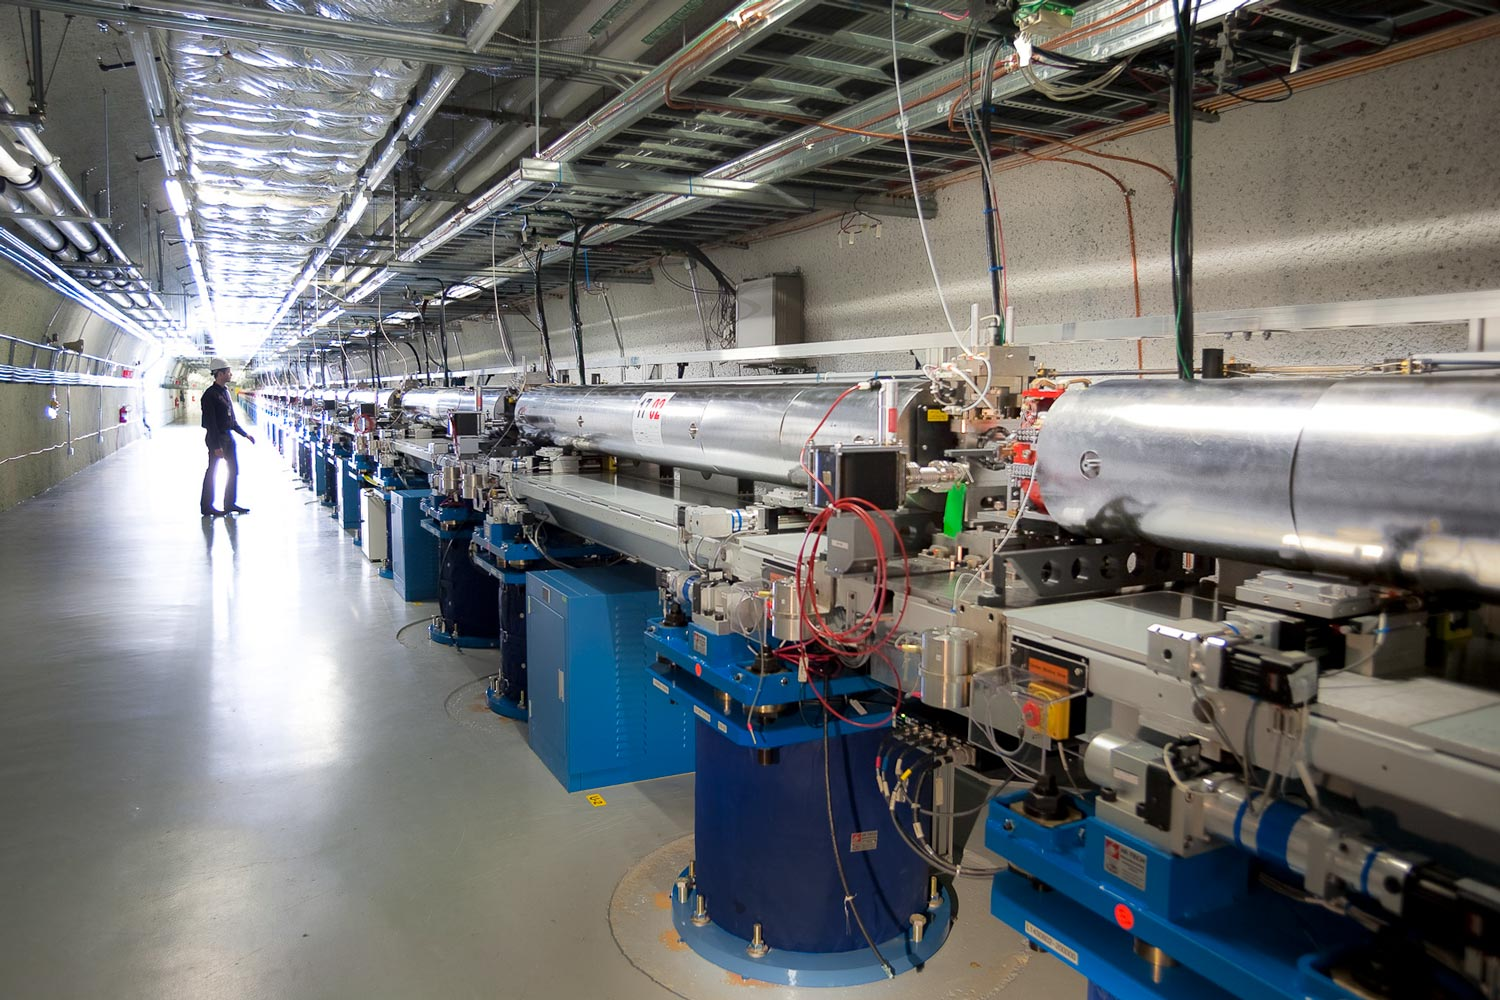 Undulator Hall at Linac Coherent Light Source, SLAC National Accelerator Laboratory